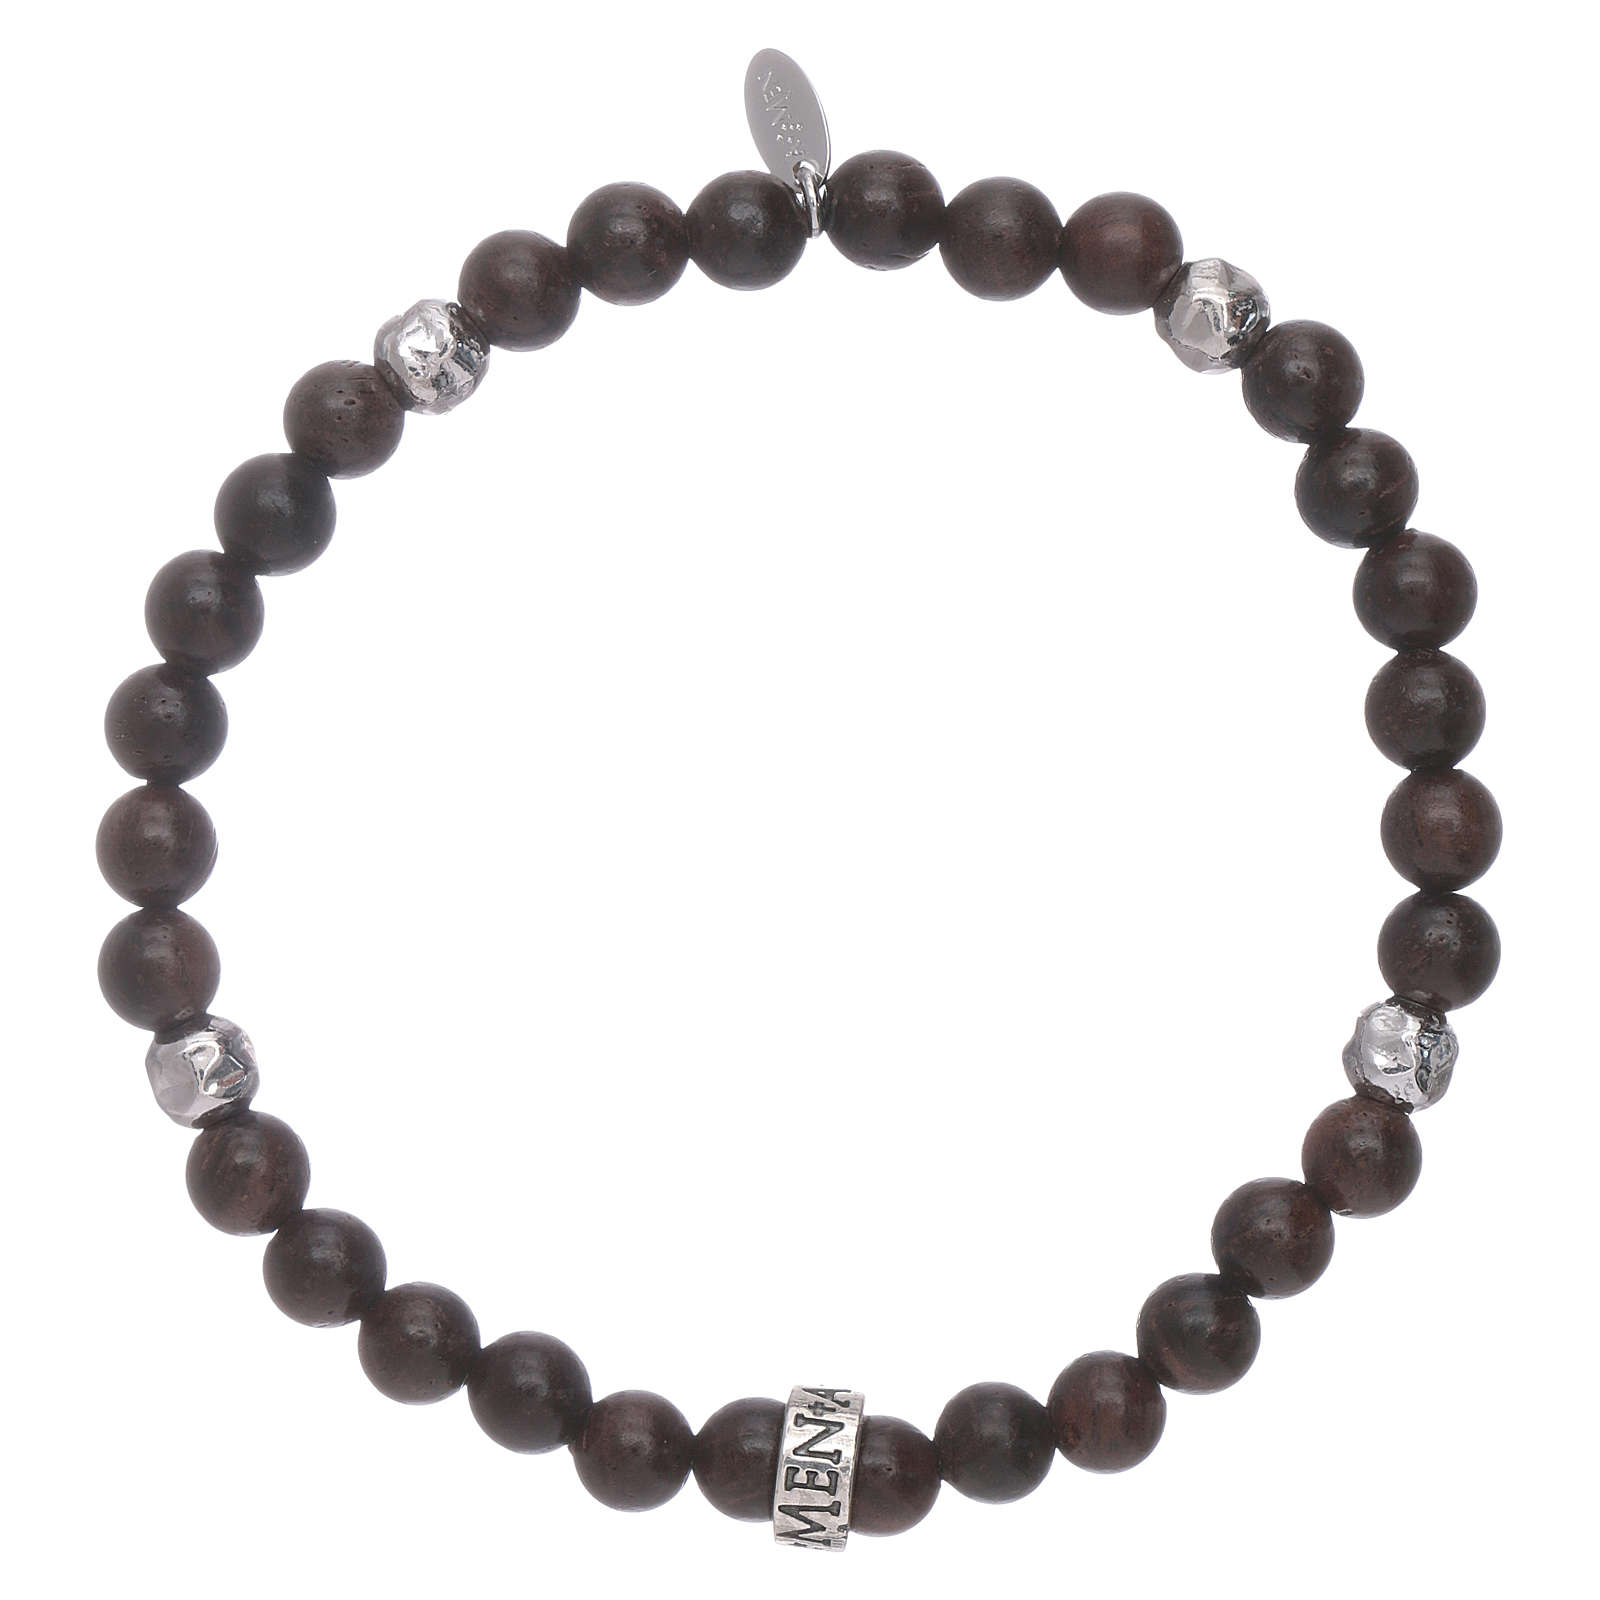 AMEN 925 sterling silver ebony bracelet with insert 4